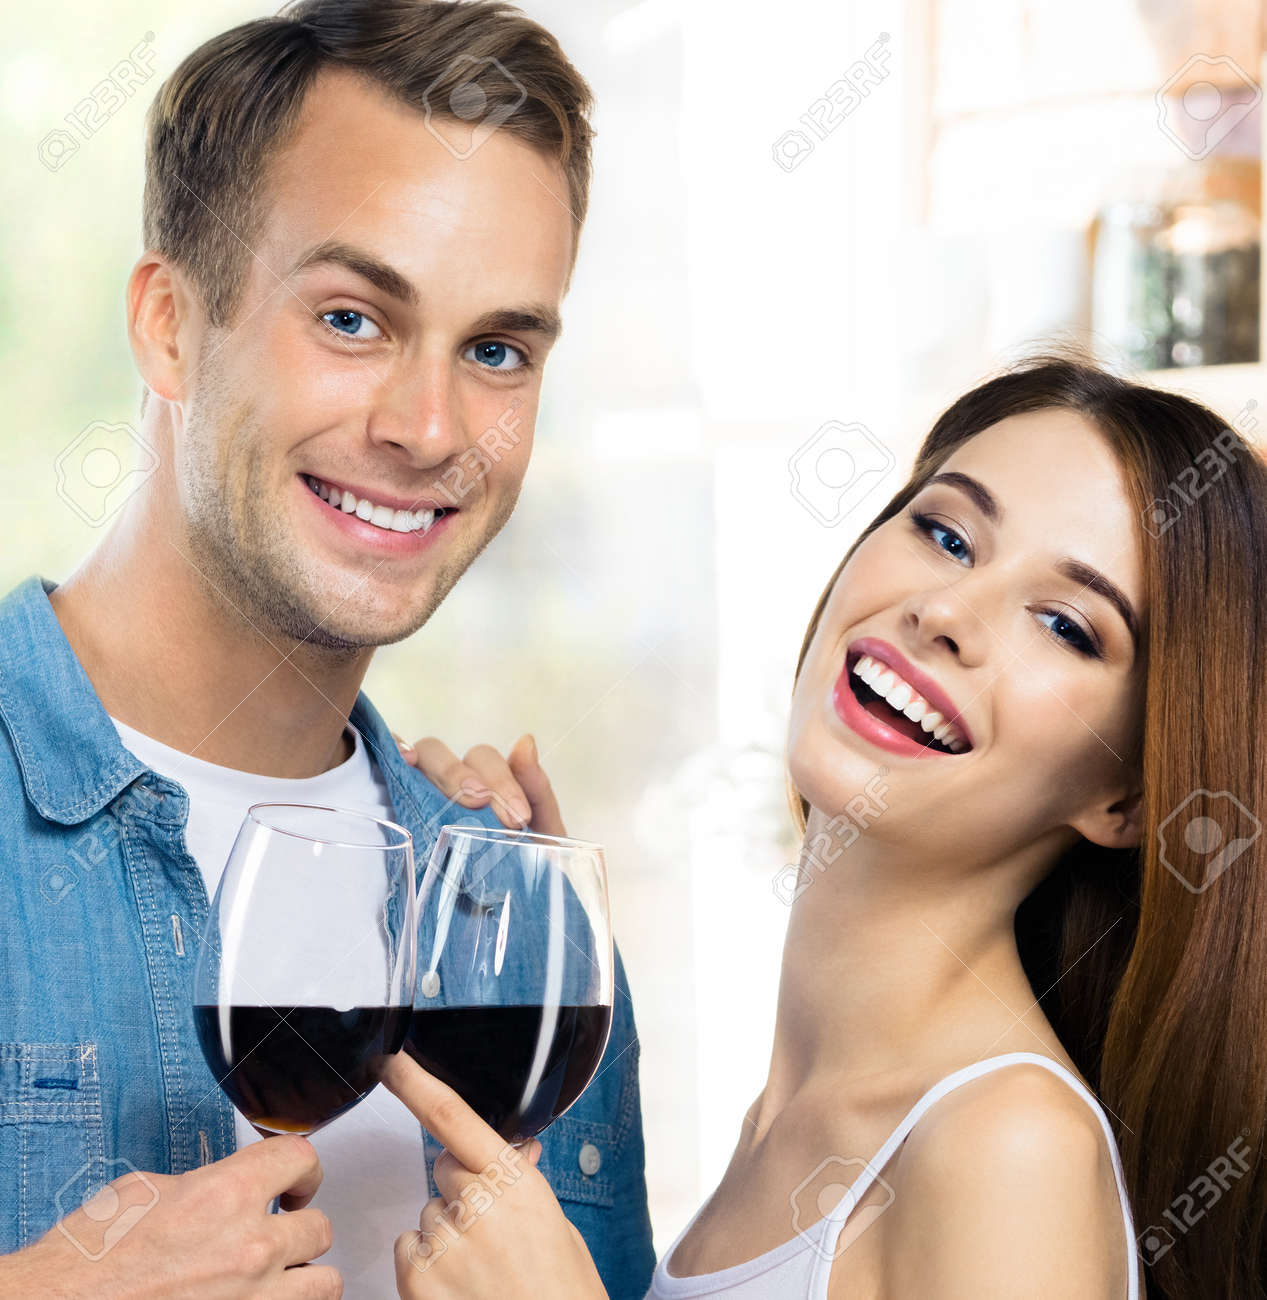 Attractive smiling young couple drinking redwine. Portrait image of caucasian models with red wine glasses in love concept. Man and woman posing together indoor. Square composition. - 171776887